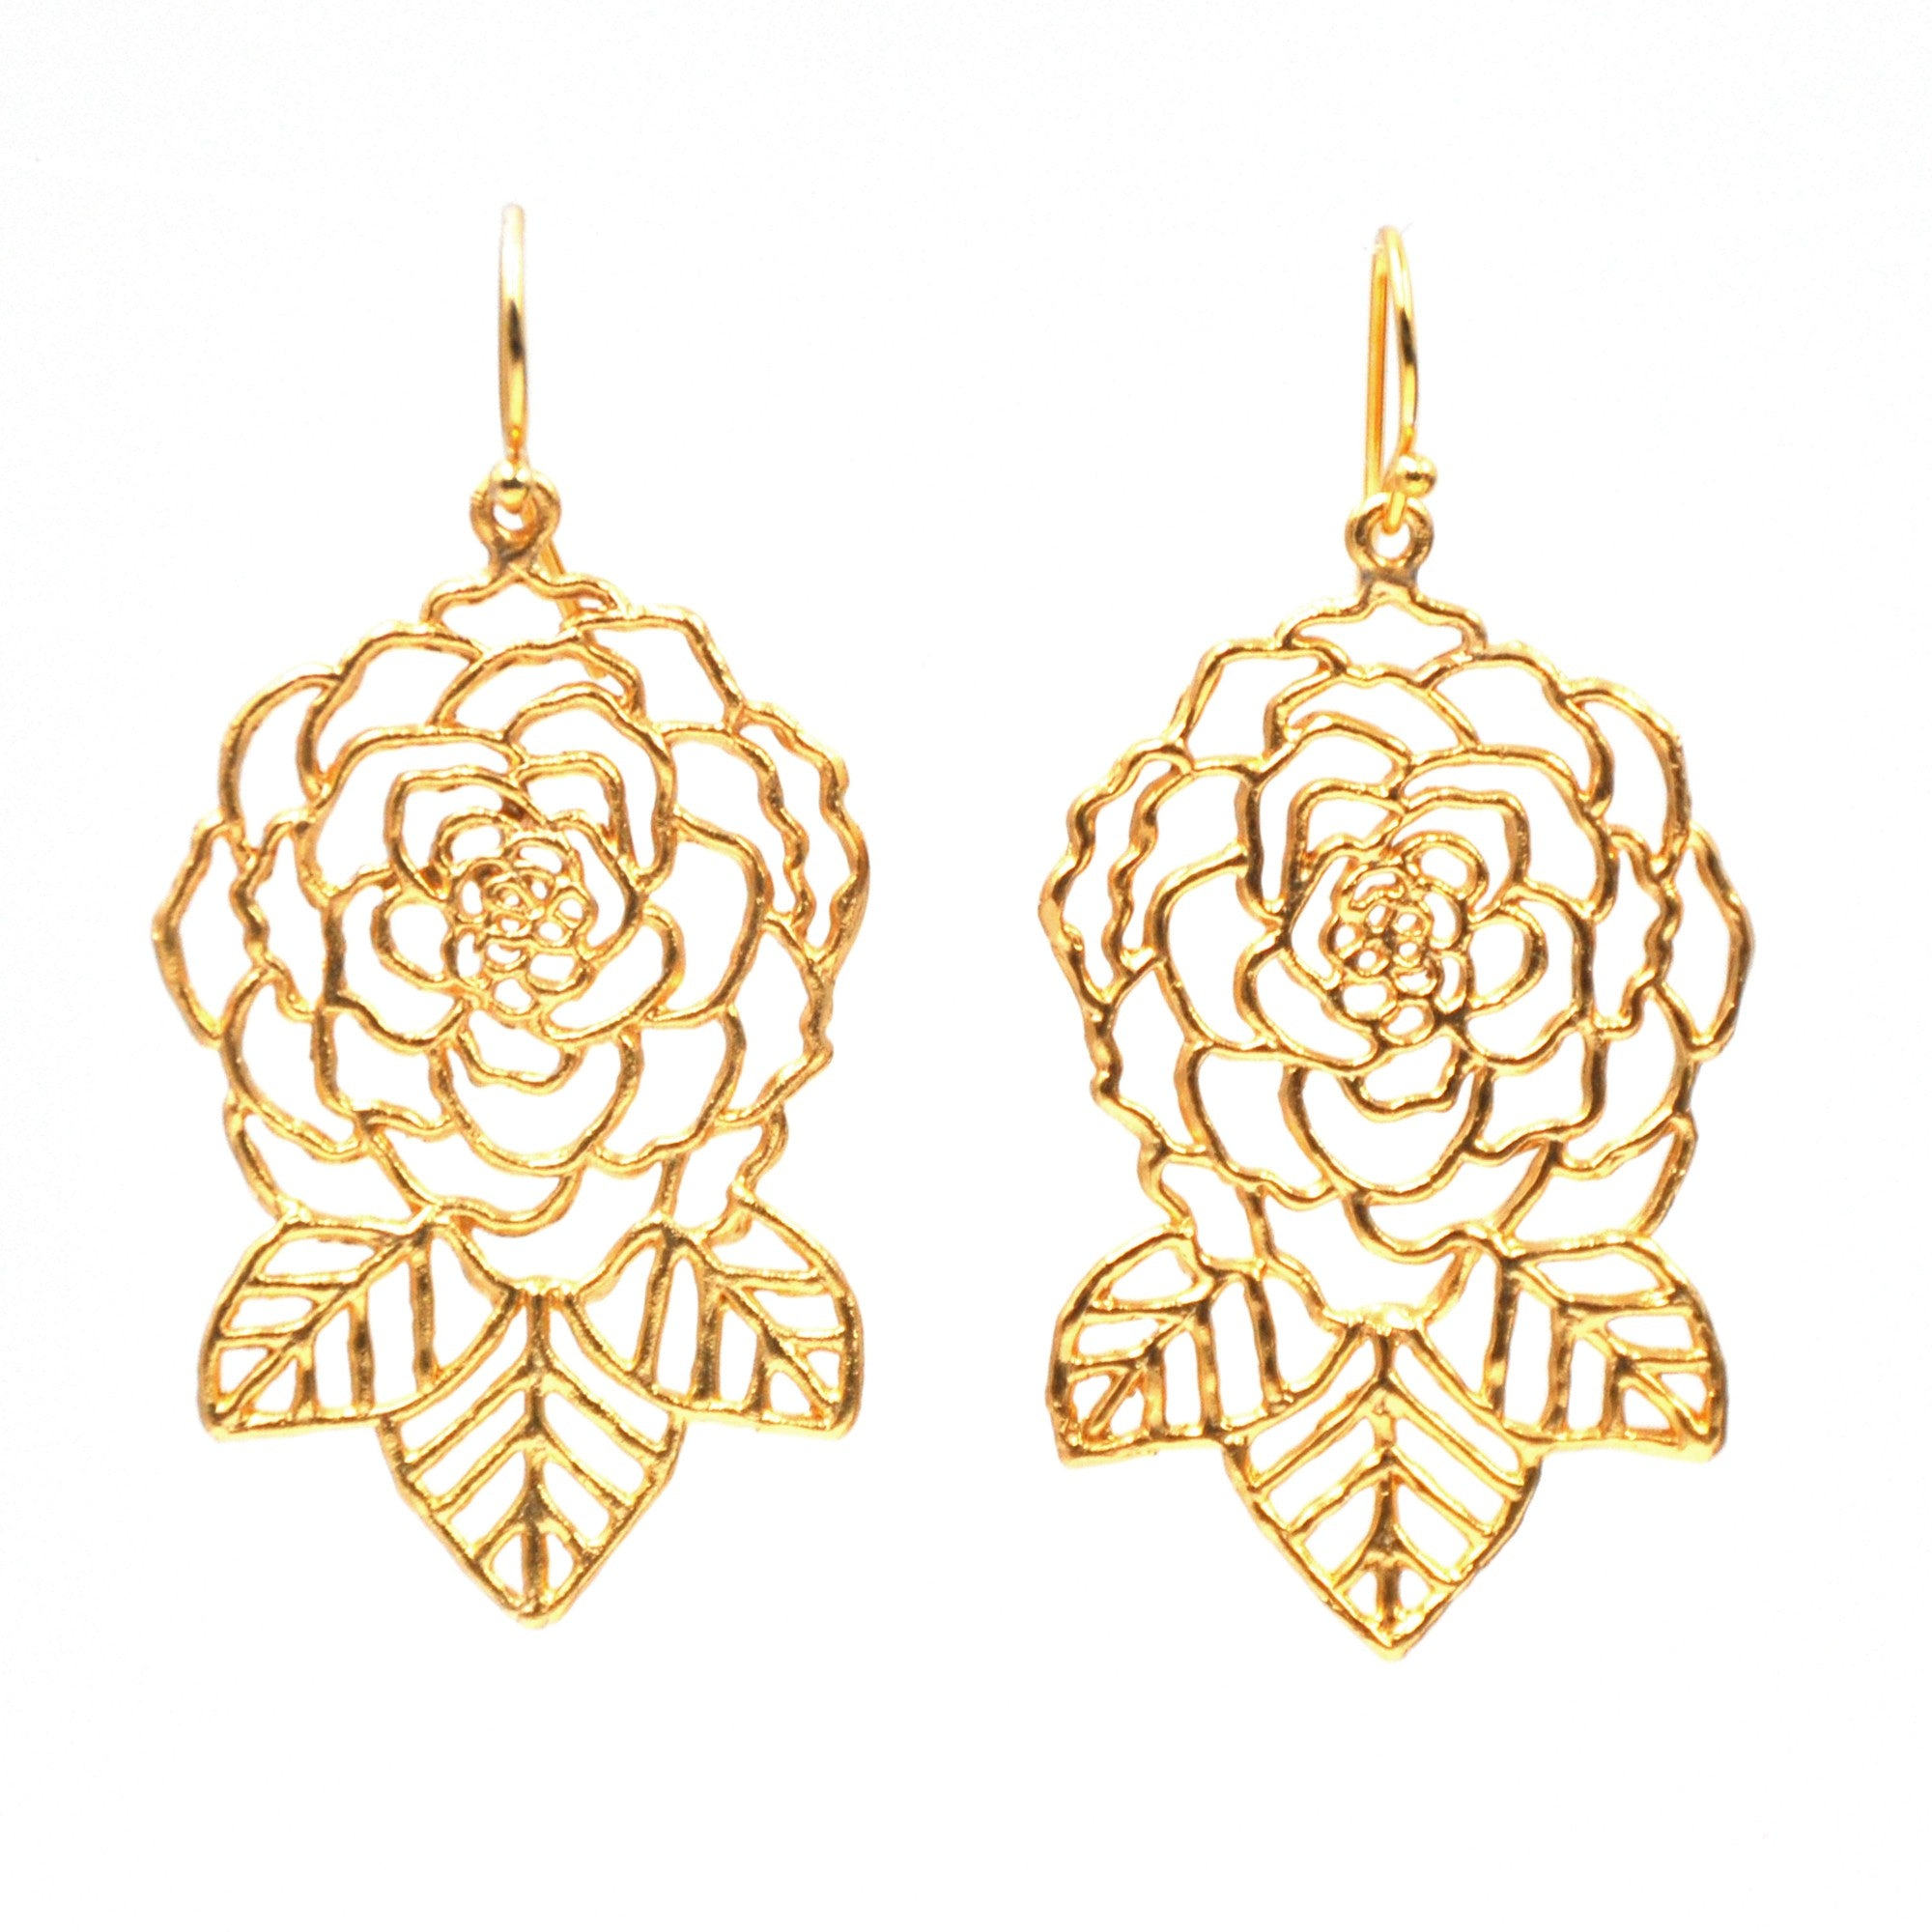 megemeria mandala gold mg yvel gsl earrings shop er